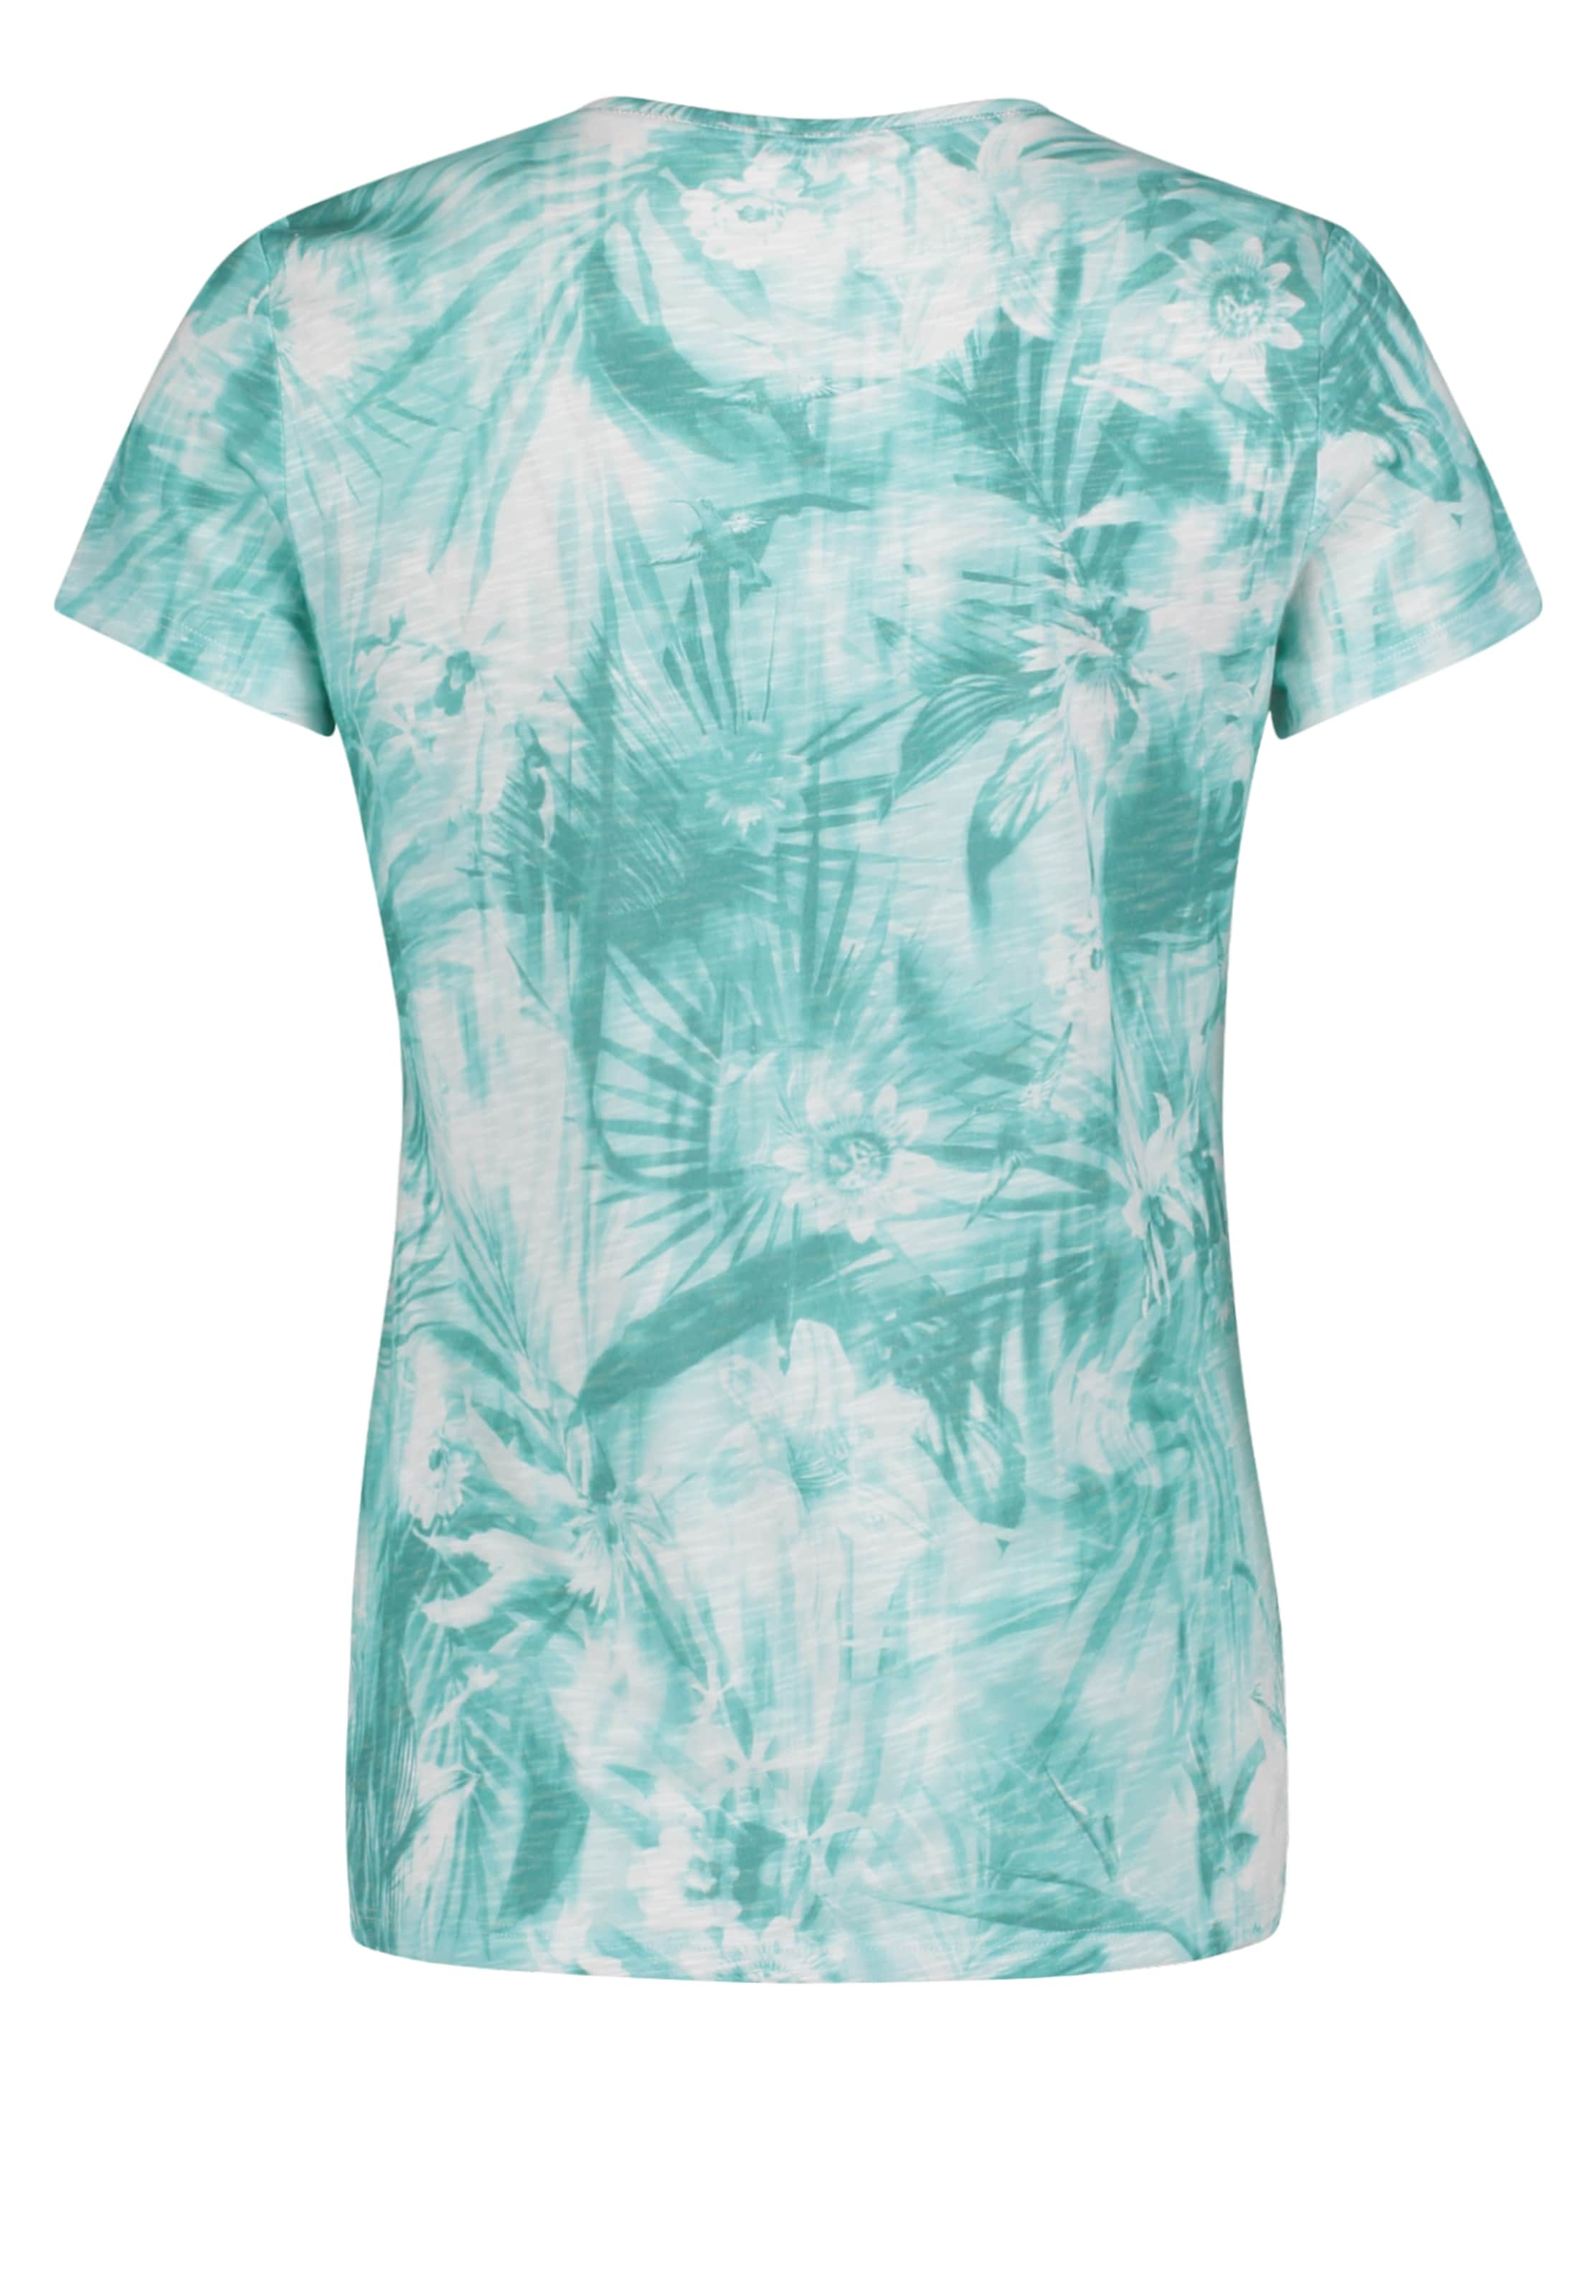 In Shirt Betty Barclay Shirt CremePetrol Barclay Betty mPw0OyvN8n